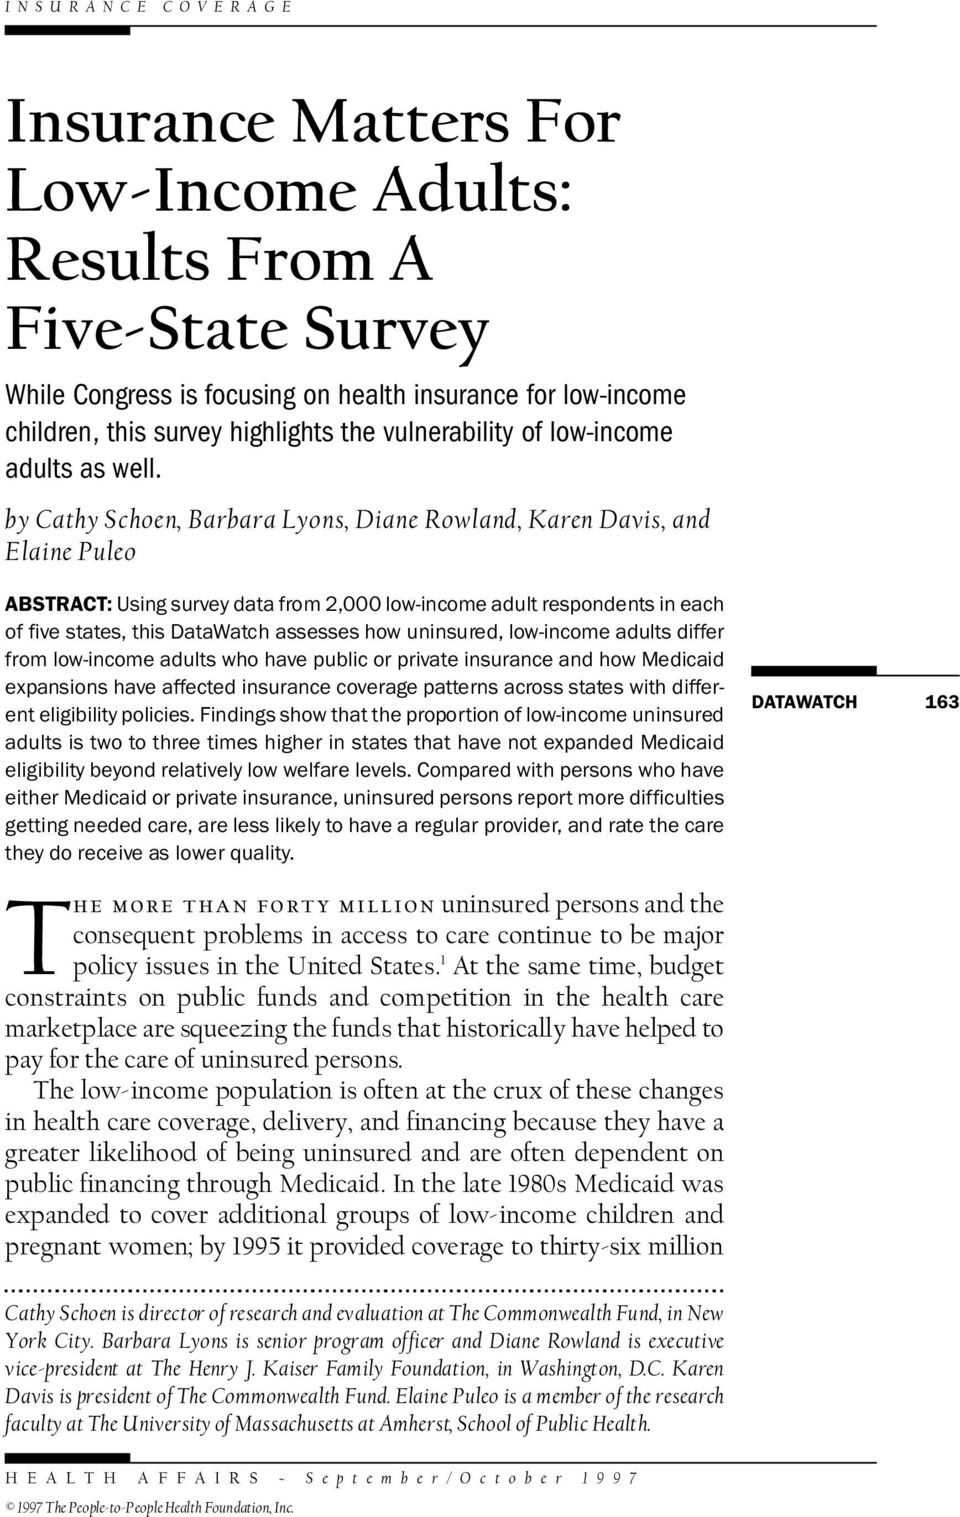 by Cathy Schoen, Barbara Lyons, Diane Rowland, Karen Davis, and Elaine Puleo ABSTRACT: Using survey data from 2,000 low-income adult respondents in each of five states, this DataWatch assesses how